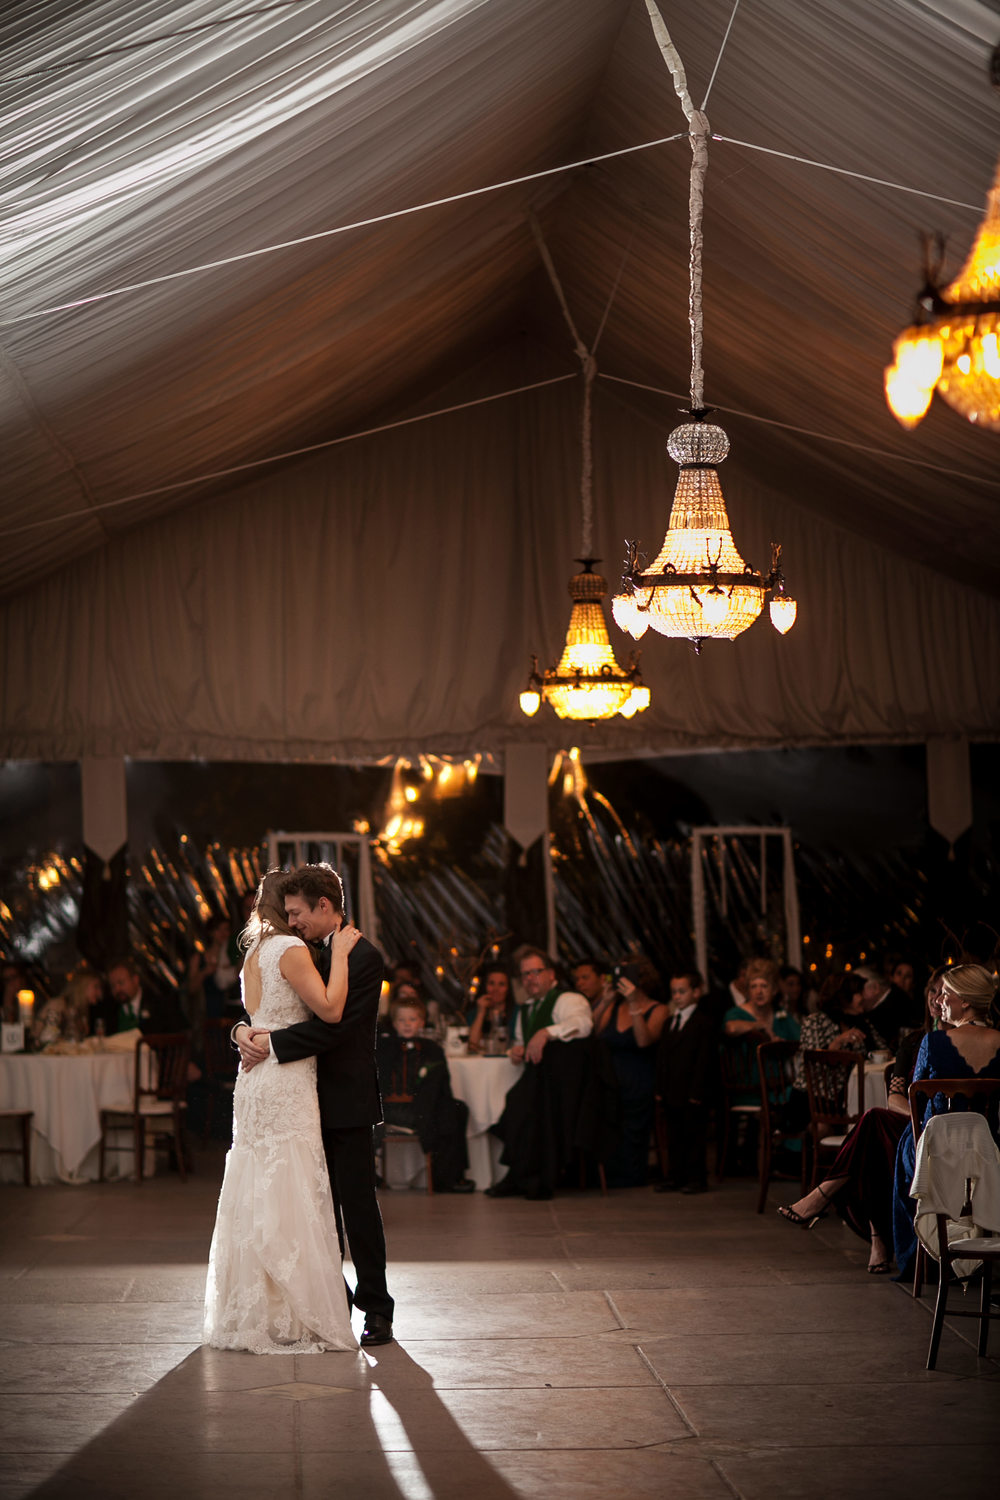 00372_20141101175859_San_Francisco_Wedding_Photographer_Sees_The_Day.jpg